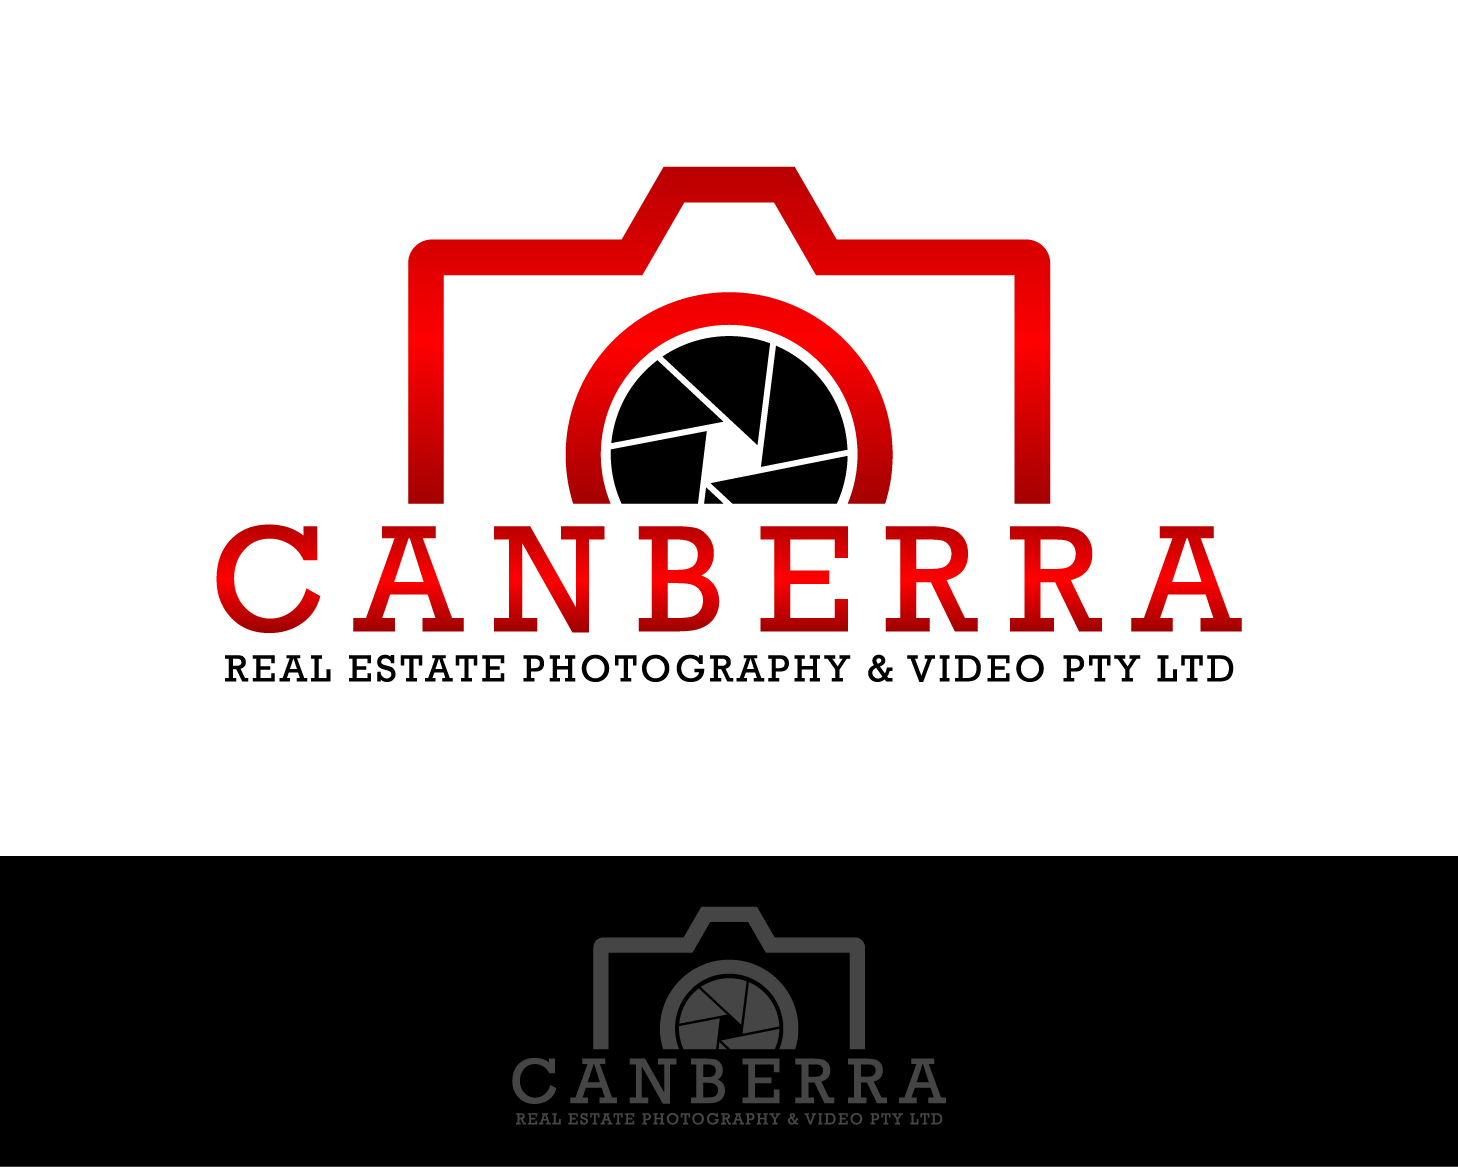 Logo Design by serroteca - Entry No. 23 in the Logo Design Contest Creative Logo Design for Canberra Real Estate Photography & Video Pty Ltd.